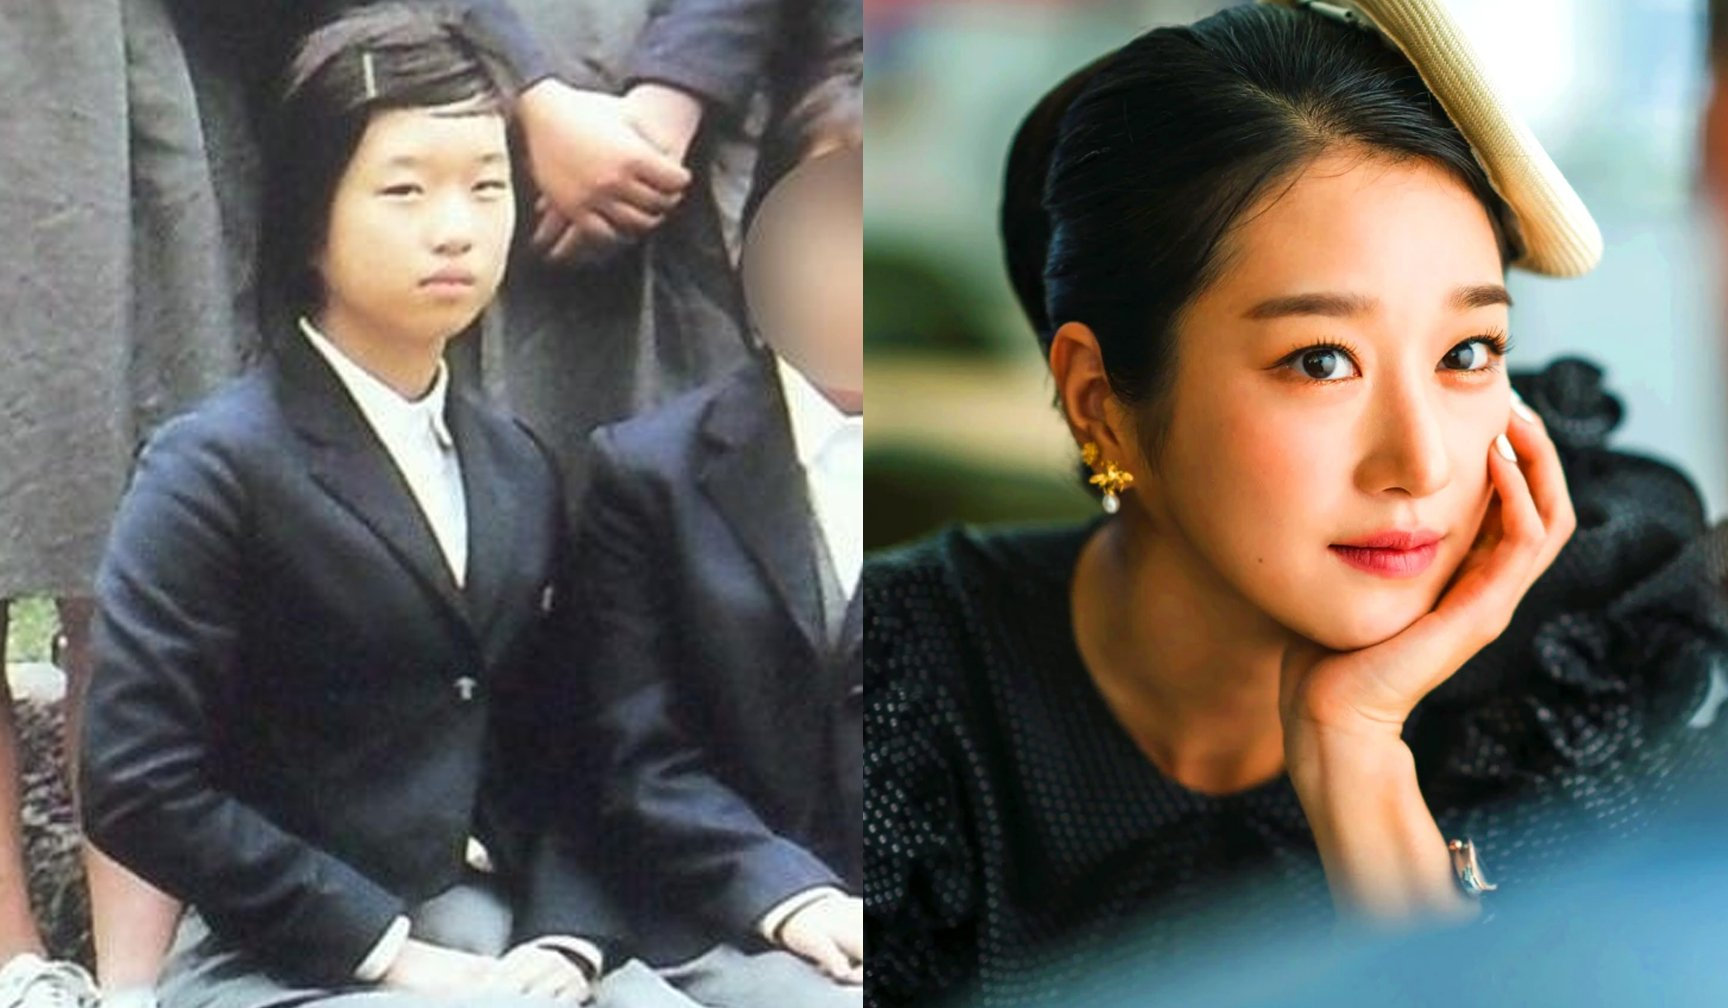 Netizens continue to dig up Seo Ye Ji's past, alleging plastic surgery and school violence